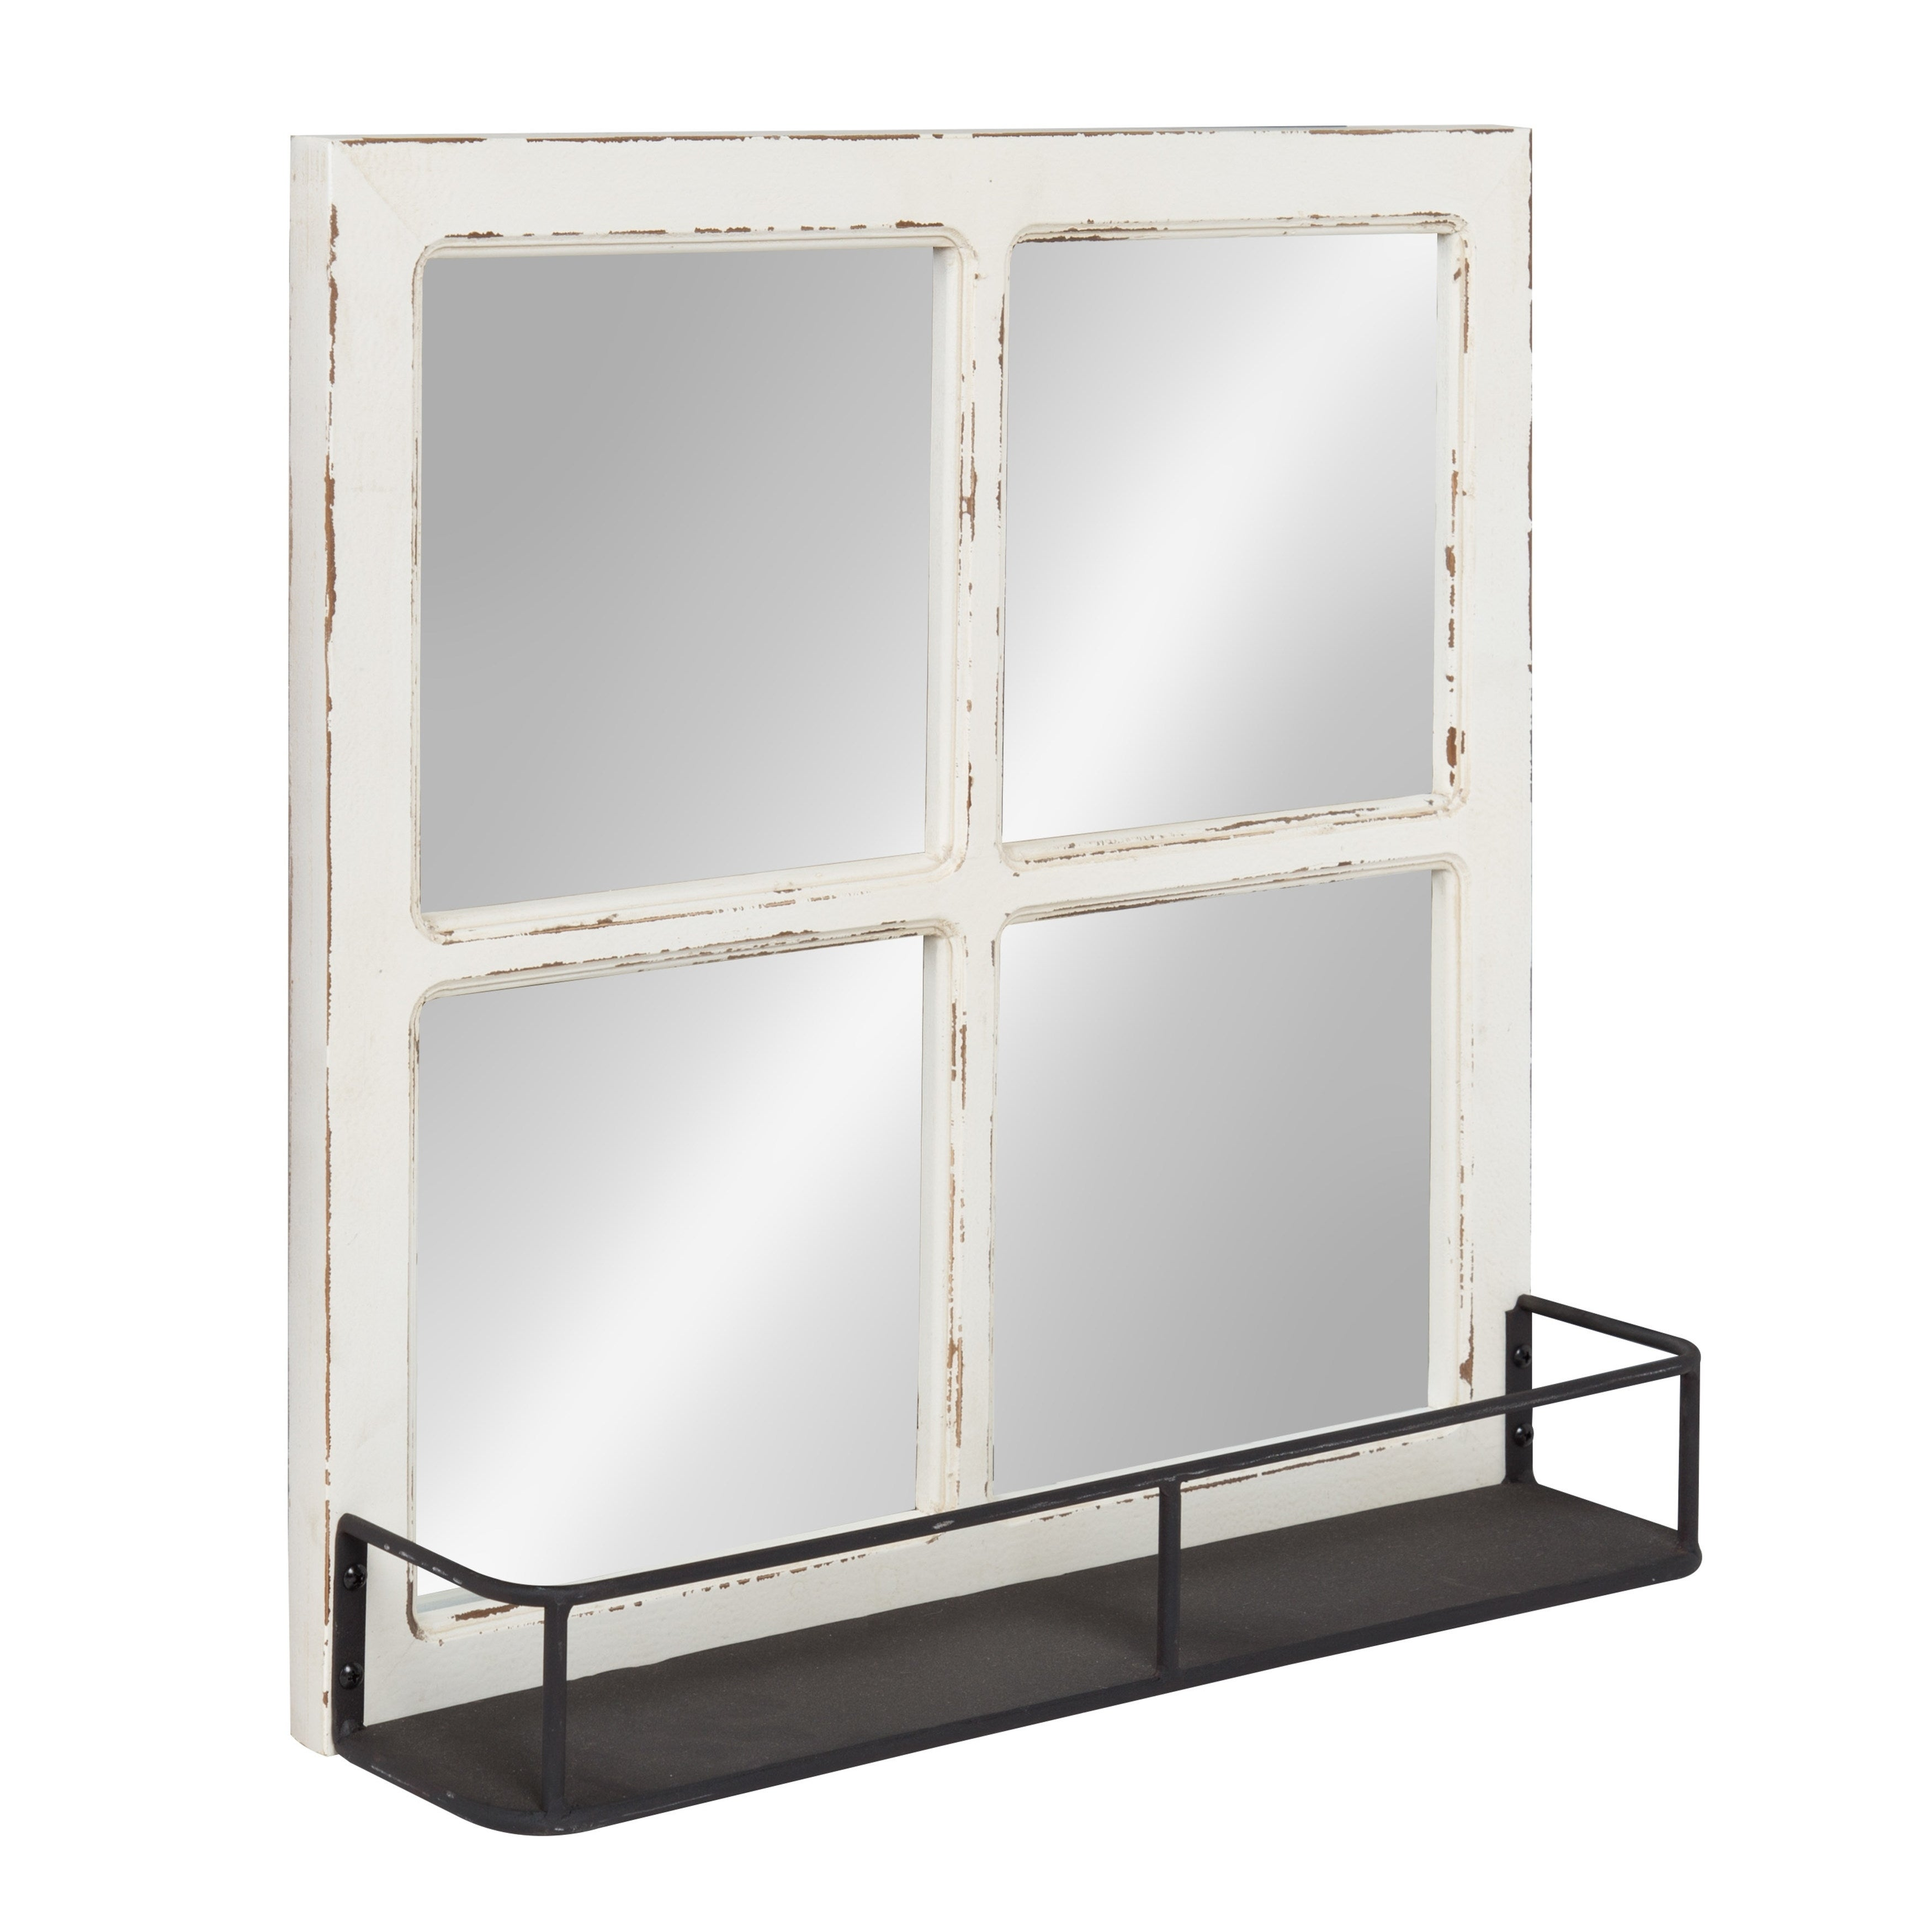 s window organization favorite gray entryway kirkland add and display you hooks to your with windows shelf can hallway or grey home mirror charm some pane wall pin